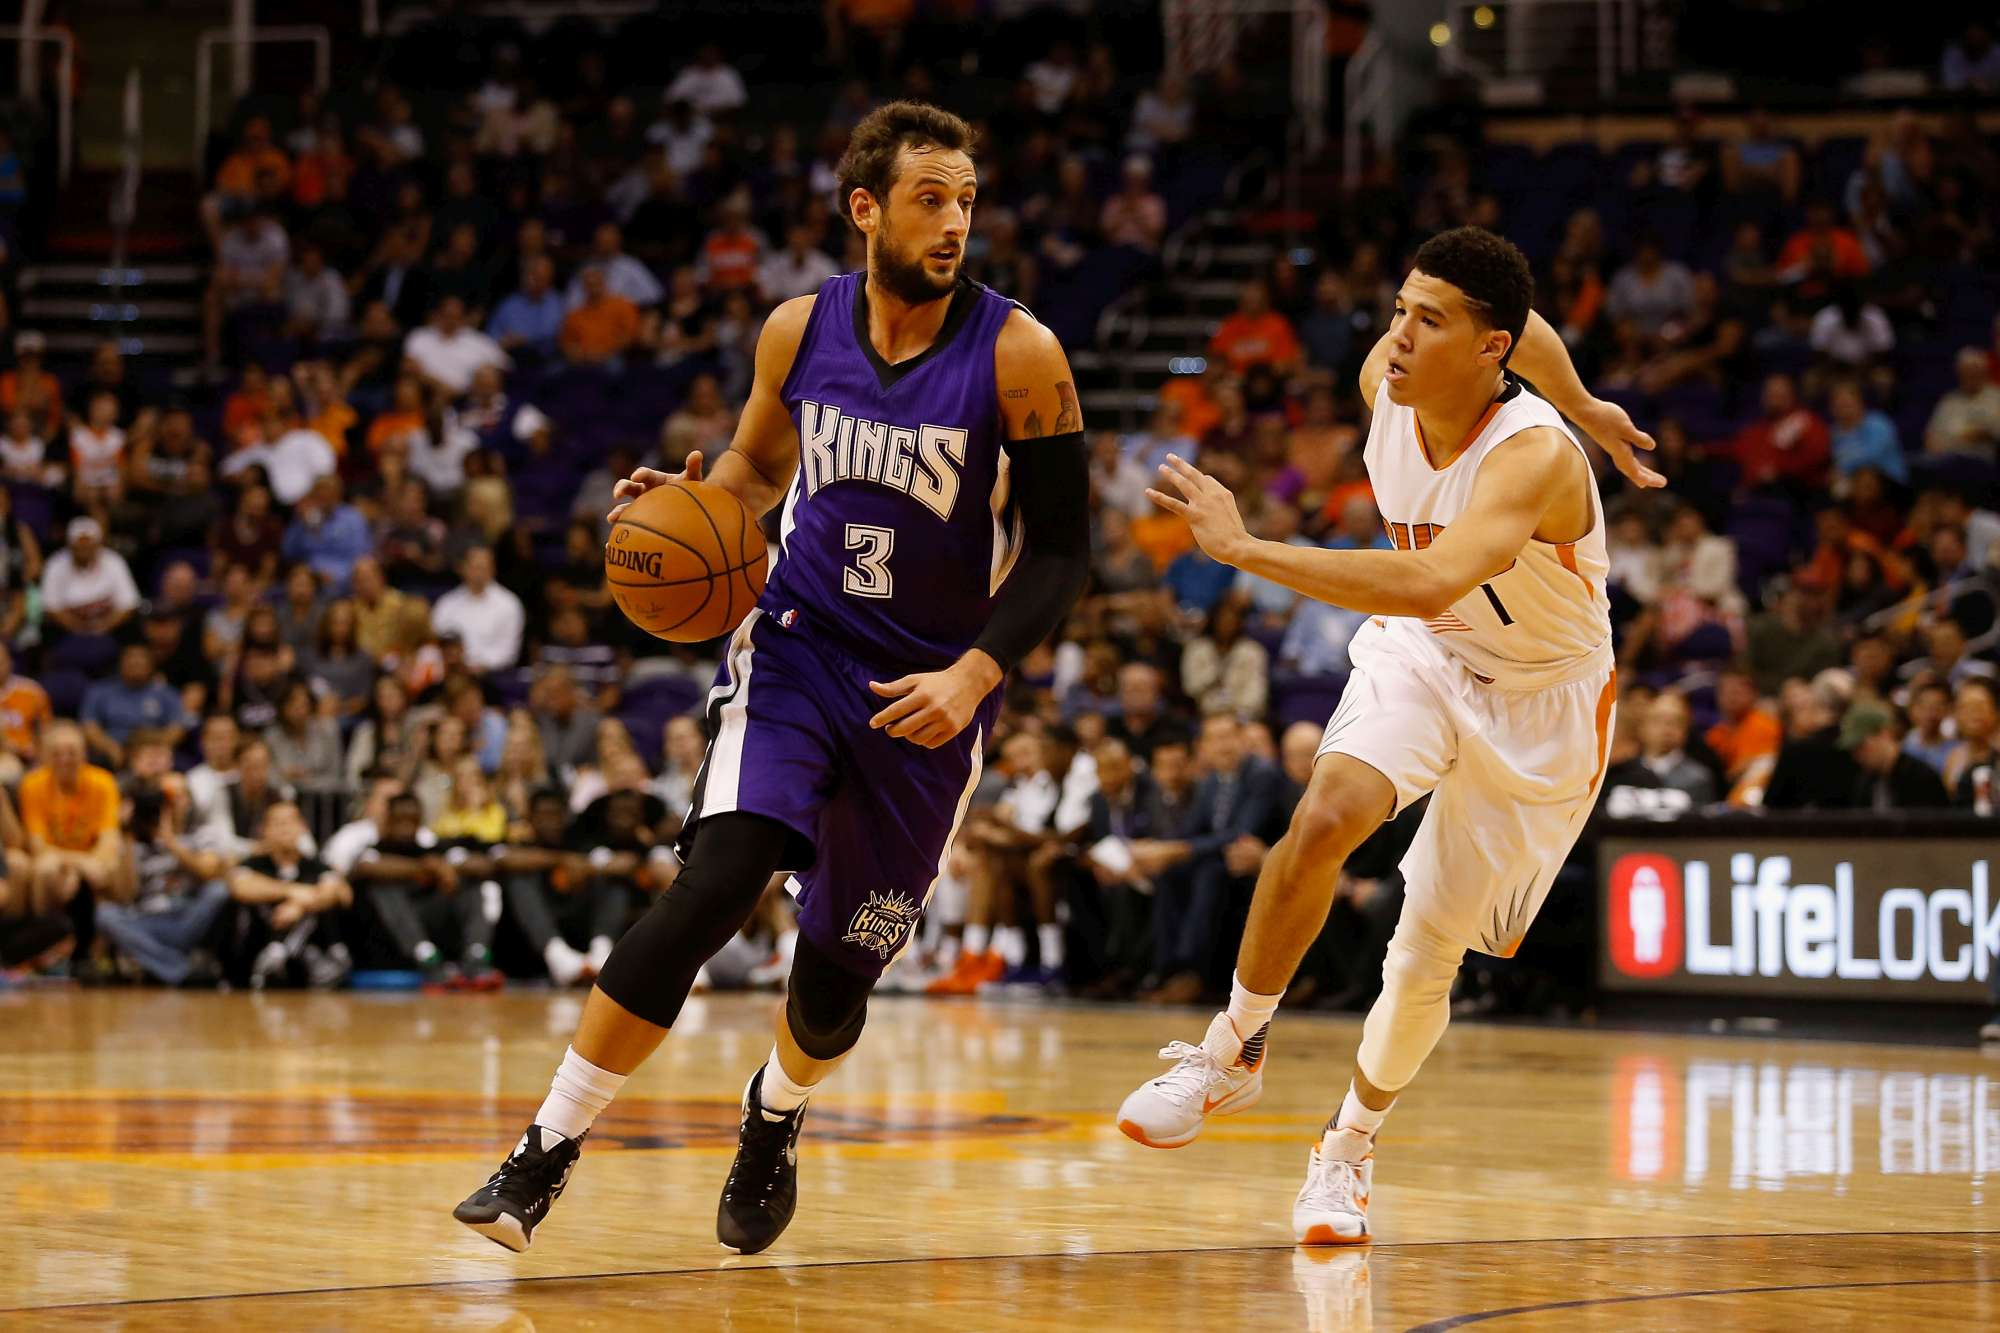 PHOENIX, AZ - OCTOBER 07: Marco Belinelli #3 of the Sacramento Kings handles the ball during the preseason NBA game against the Phoenix Suns at Talking Stick Resort Arena on October 7, 2015 in Phoenix, Arizona. The Suns defeated the Kings 102-98. NOTE TO USER: User expressly acknowledges and agrees that, by downloading and or using this photograph, User is consenting to the terms and conditions of the Getty Images License Agreement. (Photo by Christian Petersen/Getty Images)